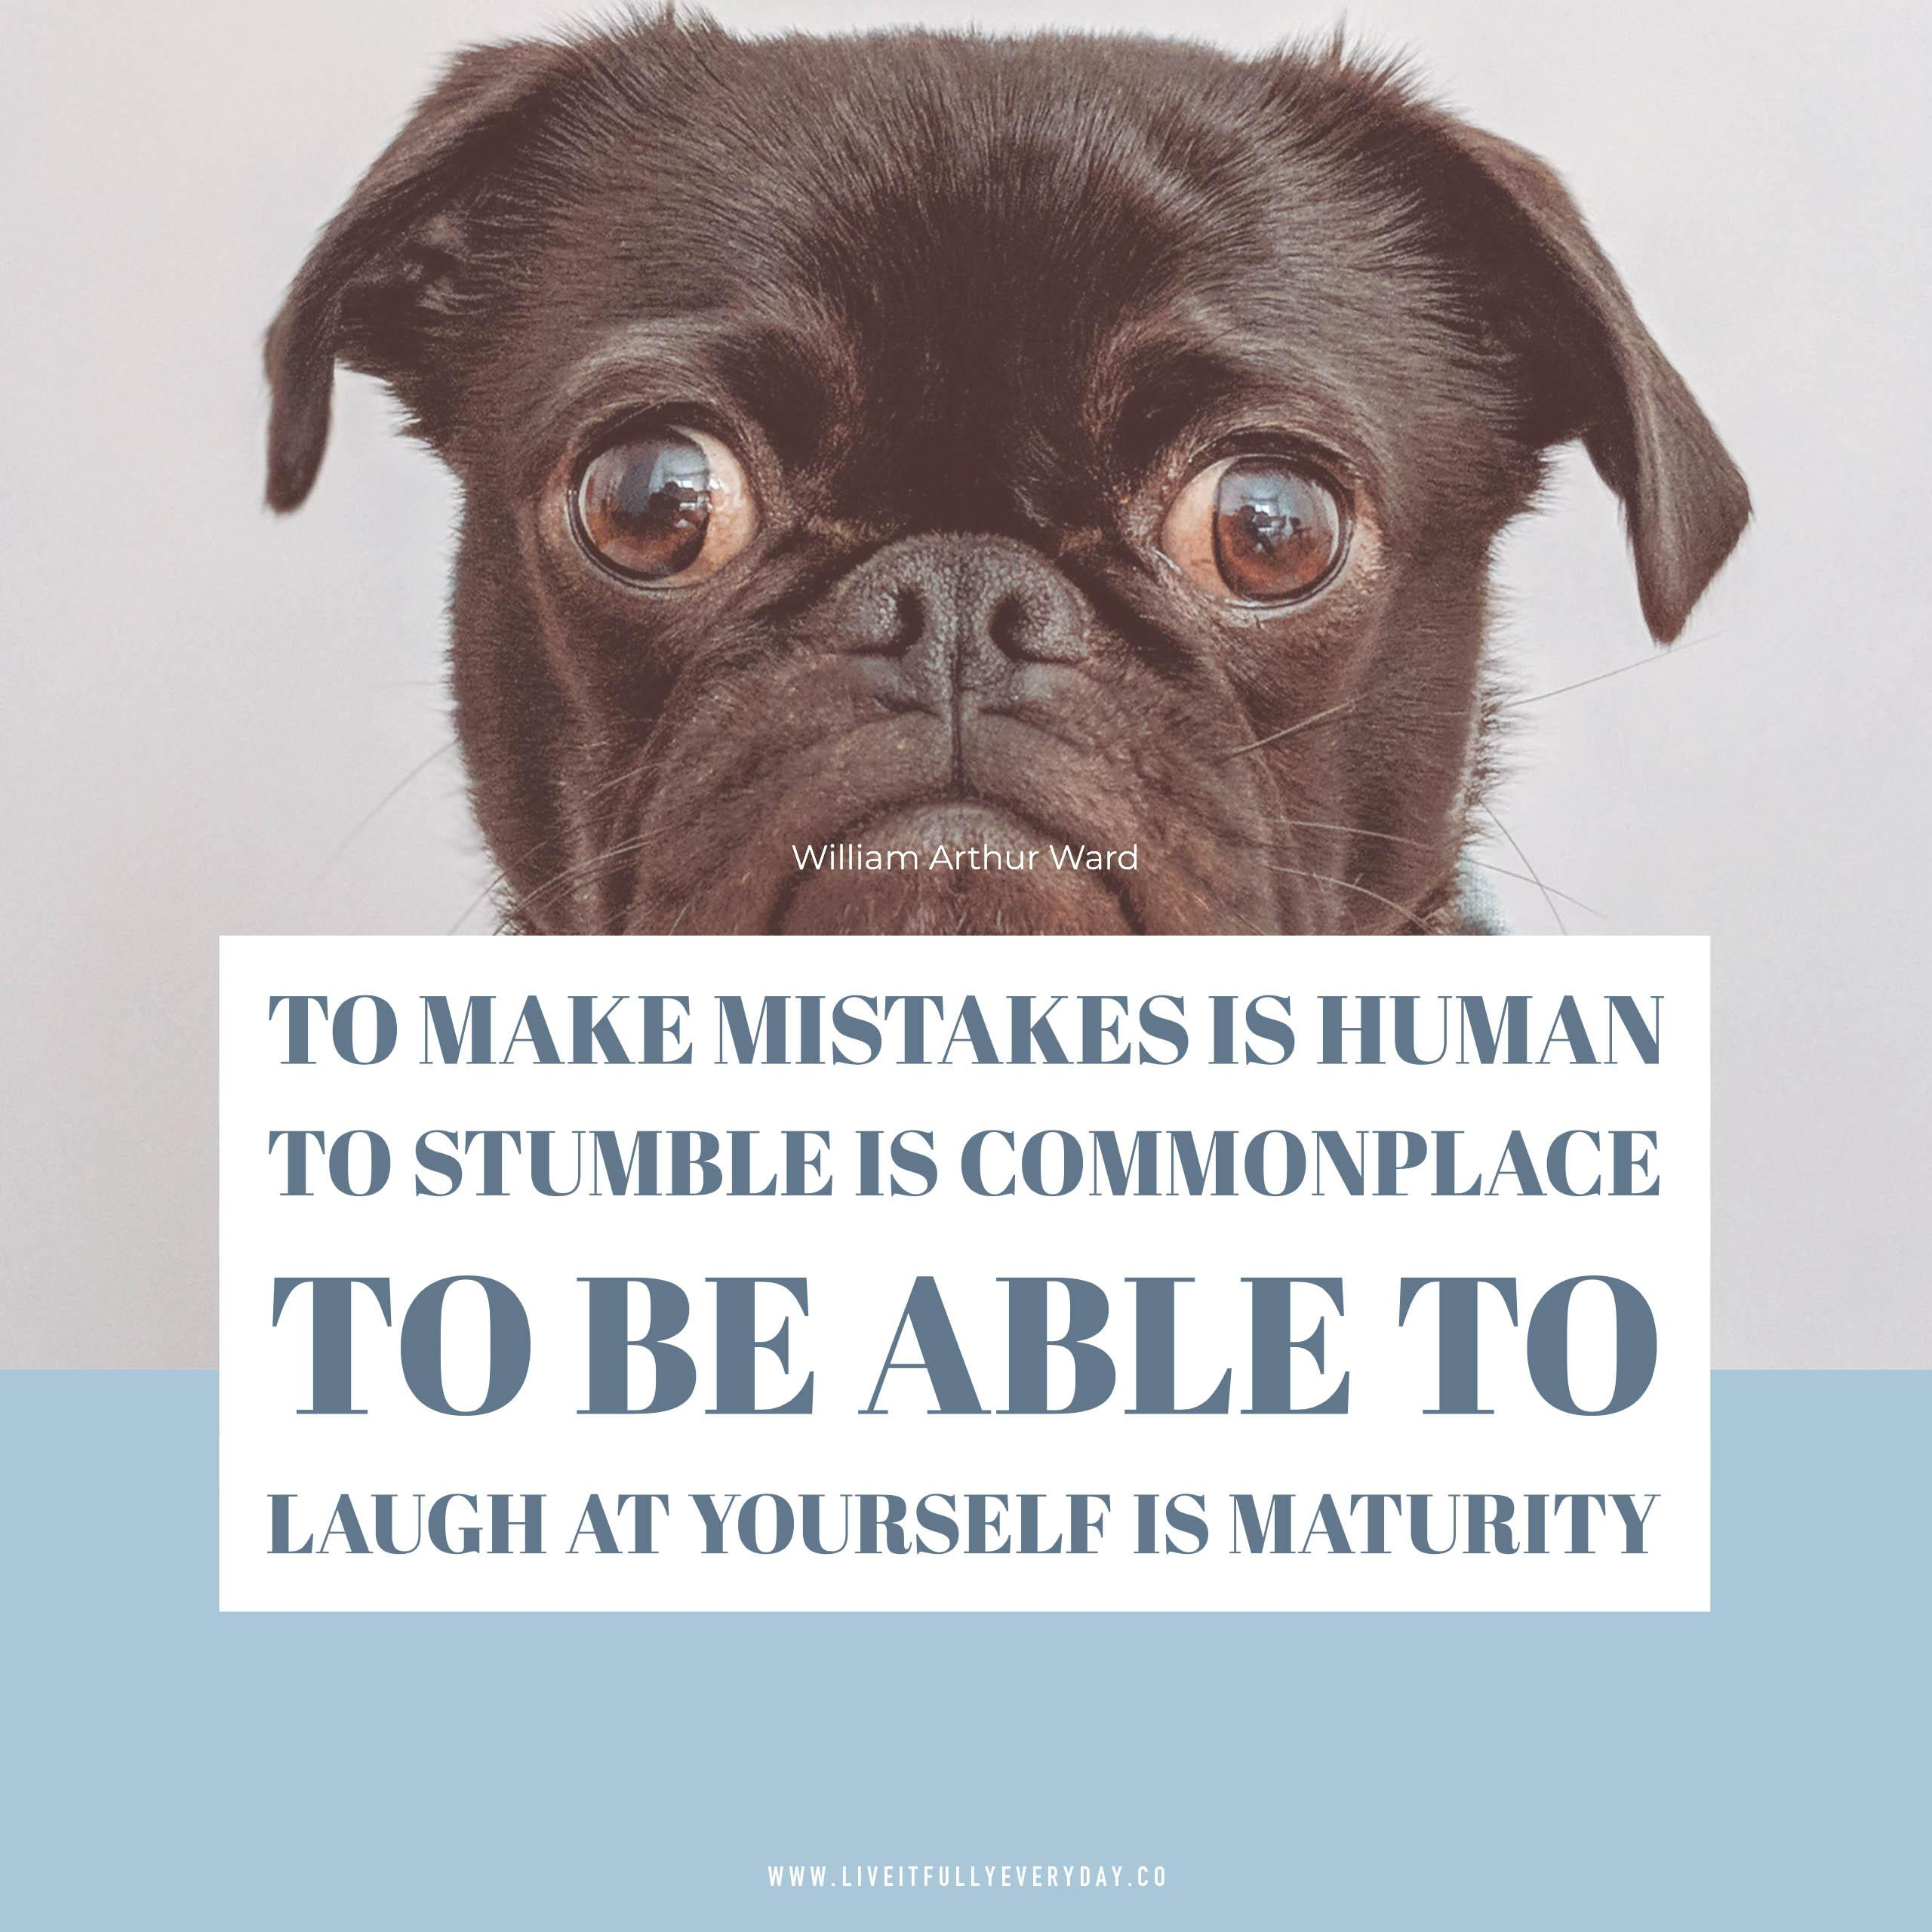 To make mistakes is human; to stumble is commonplace; to be able to laugh at yourself is maturity. – William Arthur Ward [OC][2560×2560]